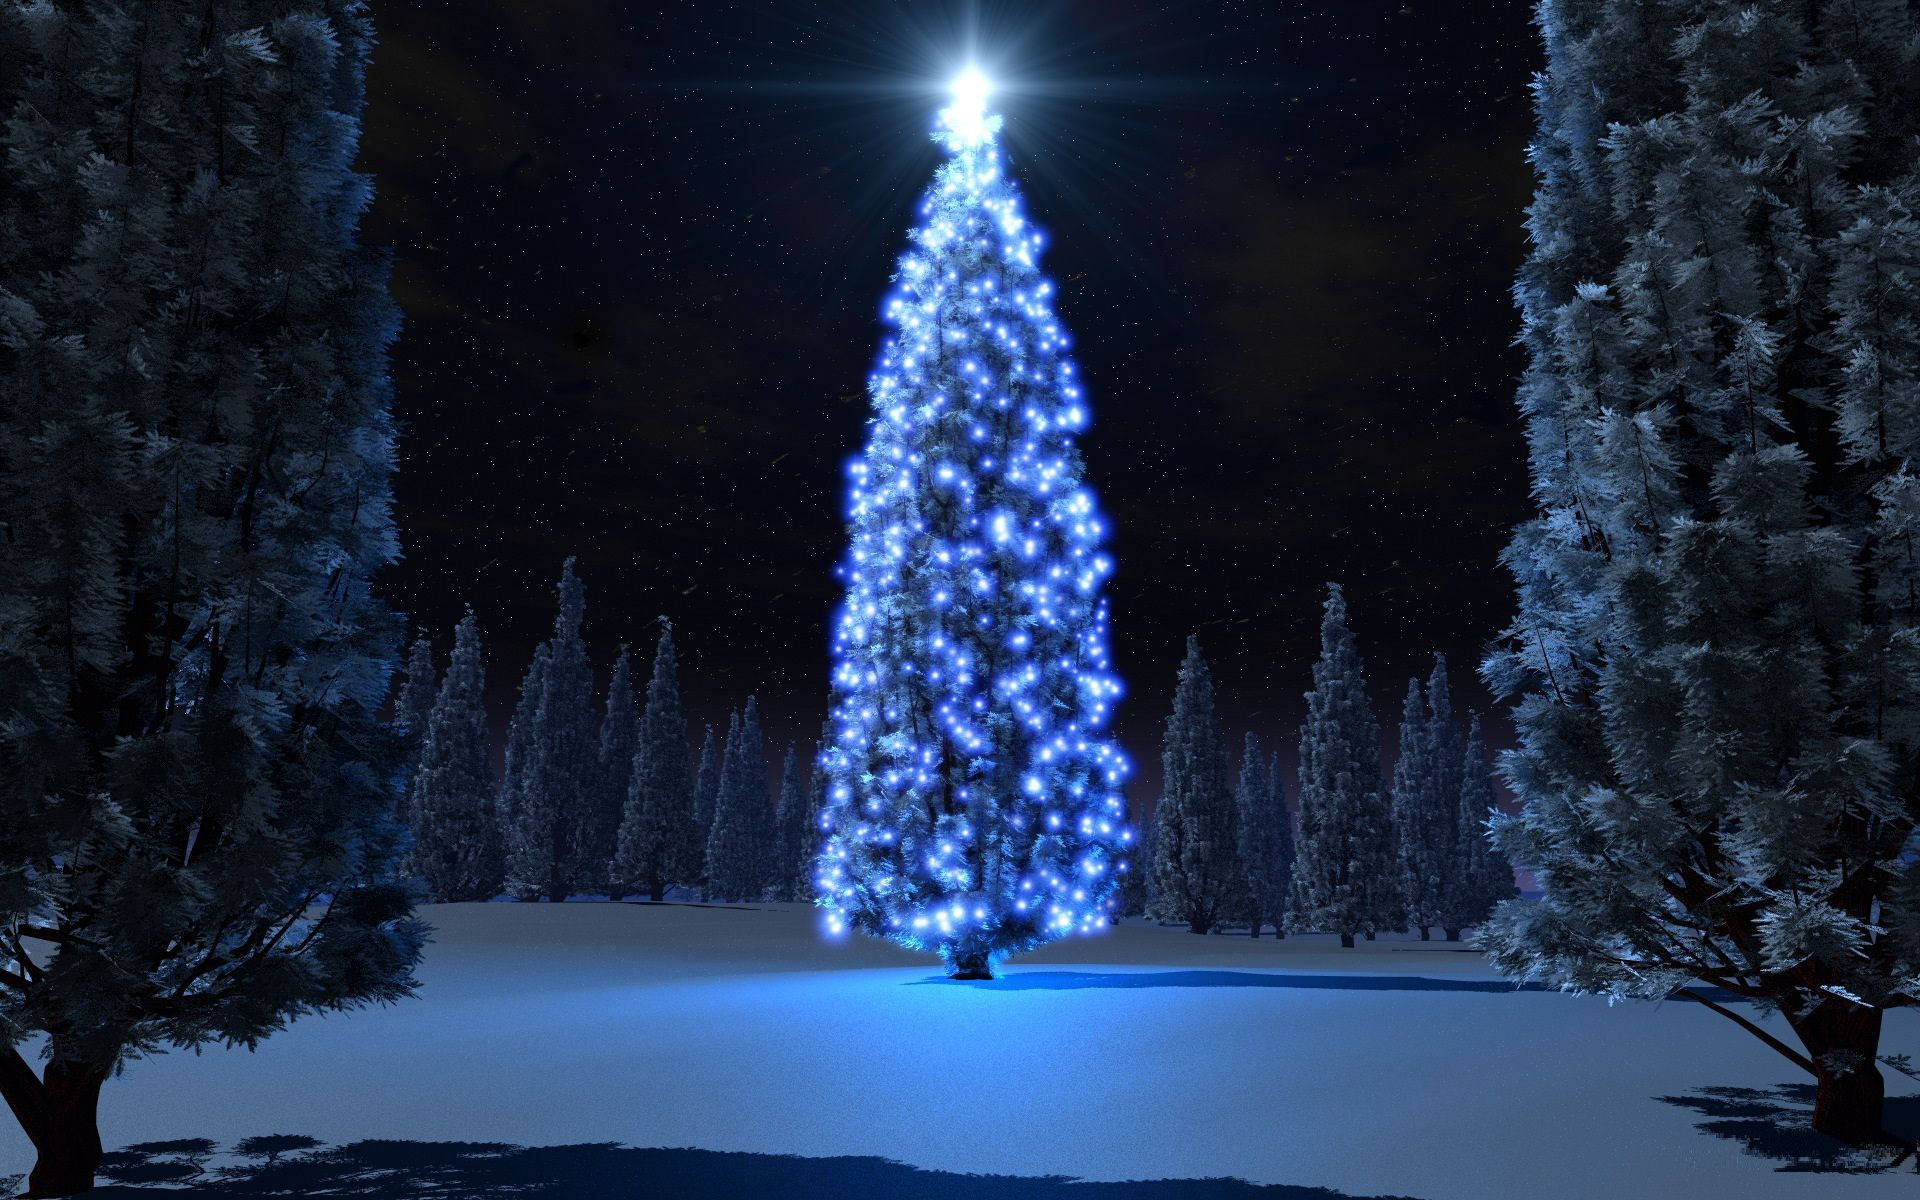 Amazing wide hd wallpapers3d christmas hd live wallpaper happy amazing wide hd wallpapers3d christmas hd live wallpaper voltagebd Choice Image